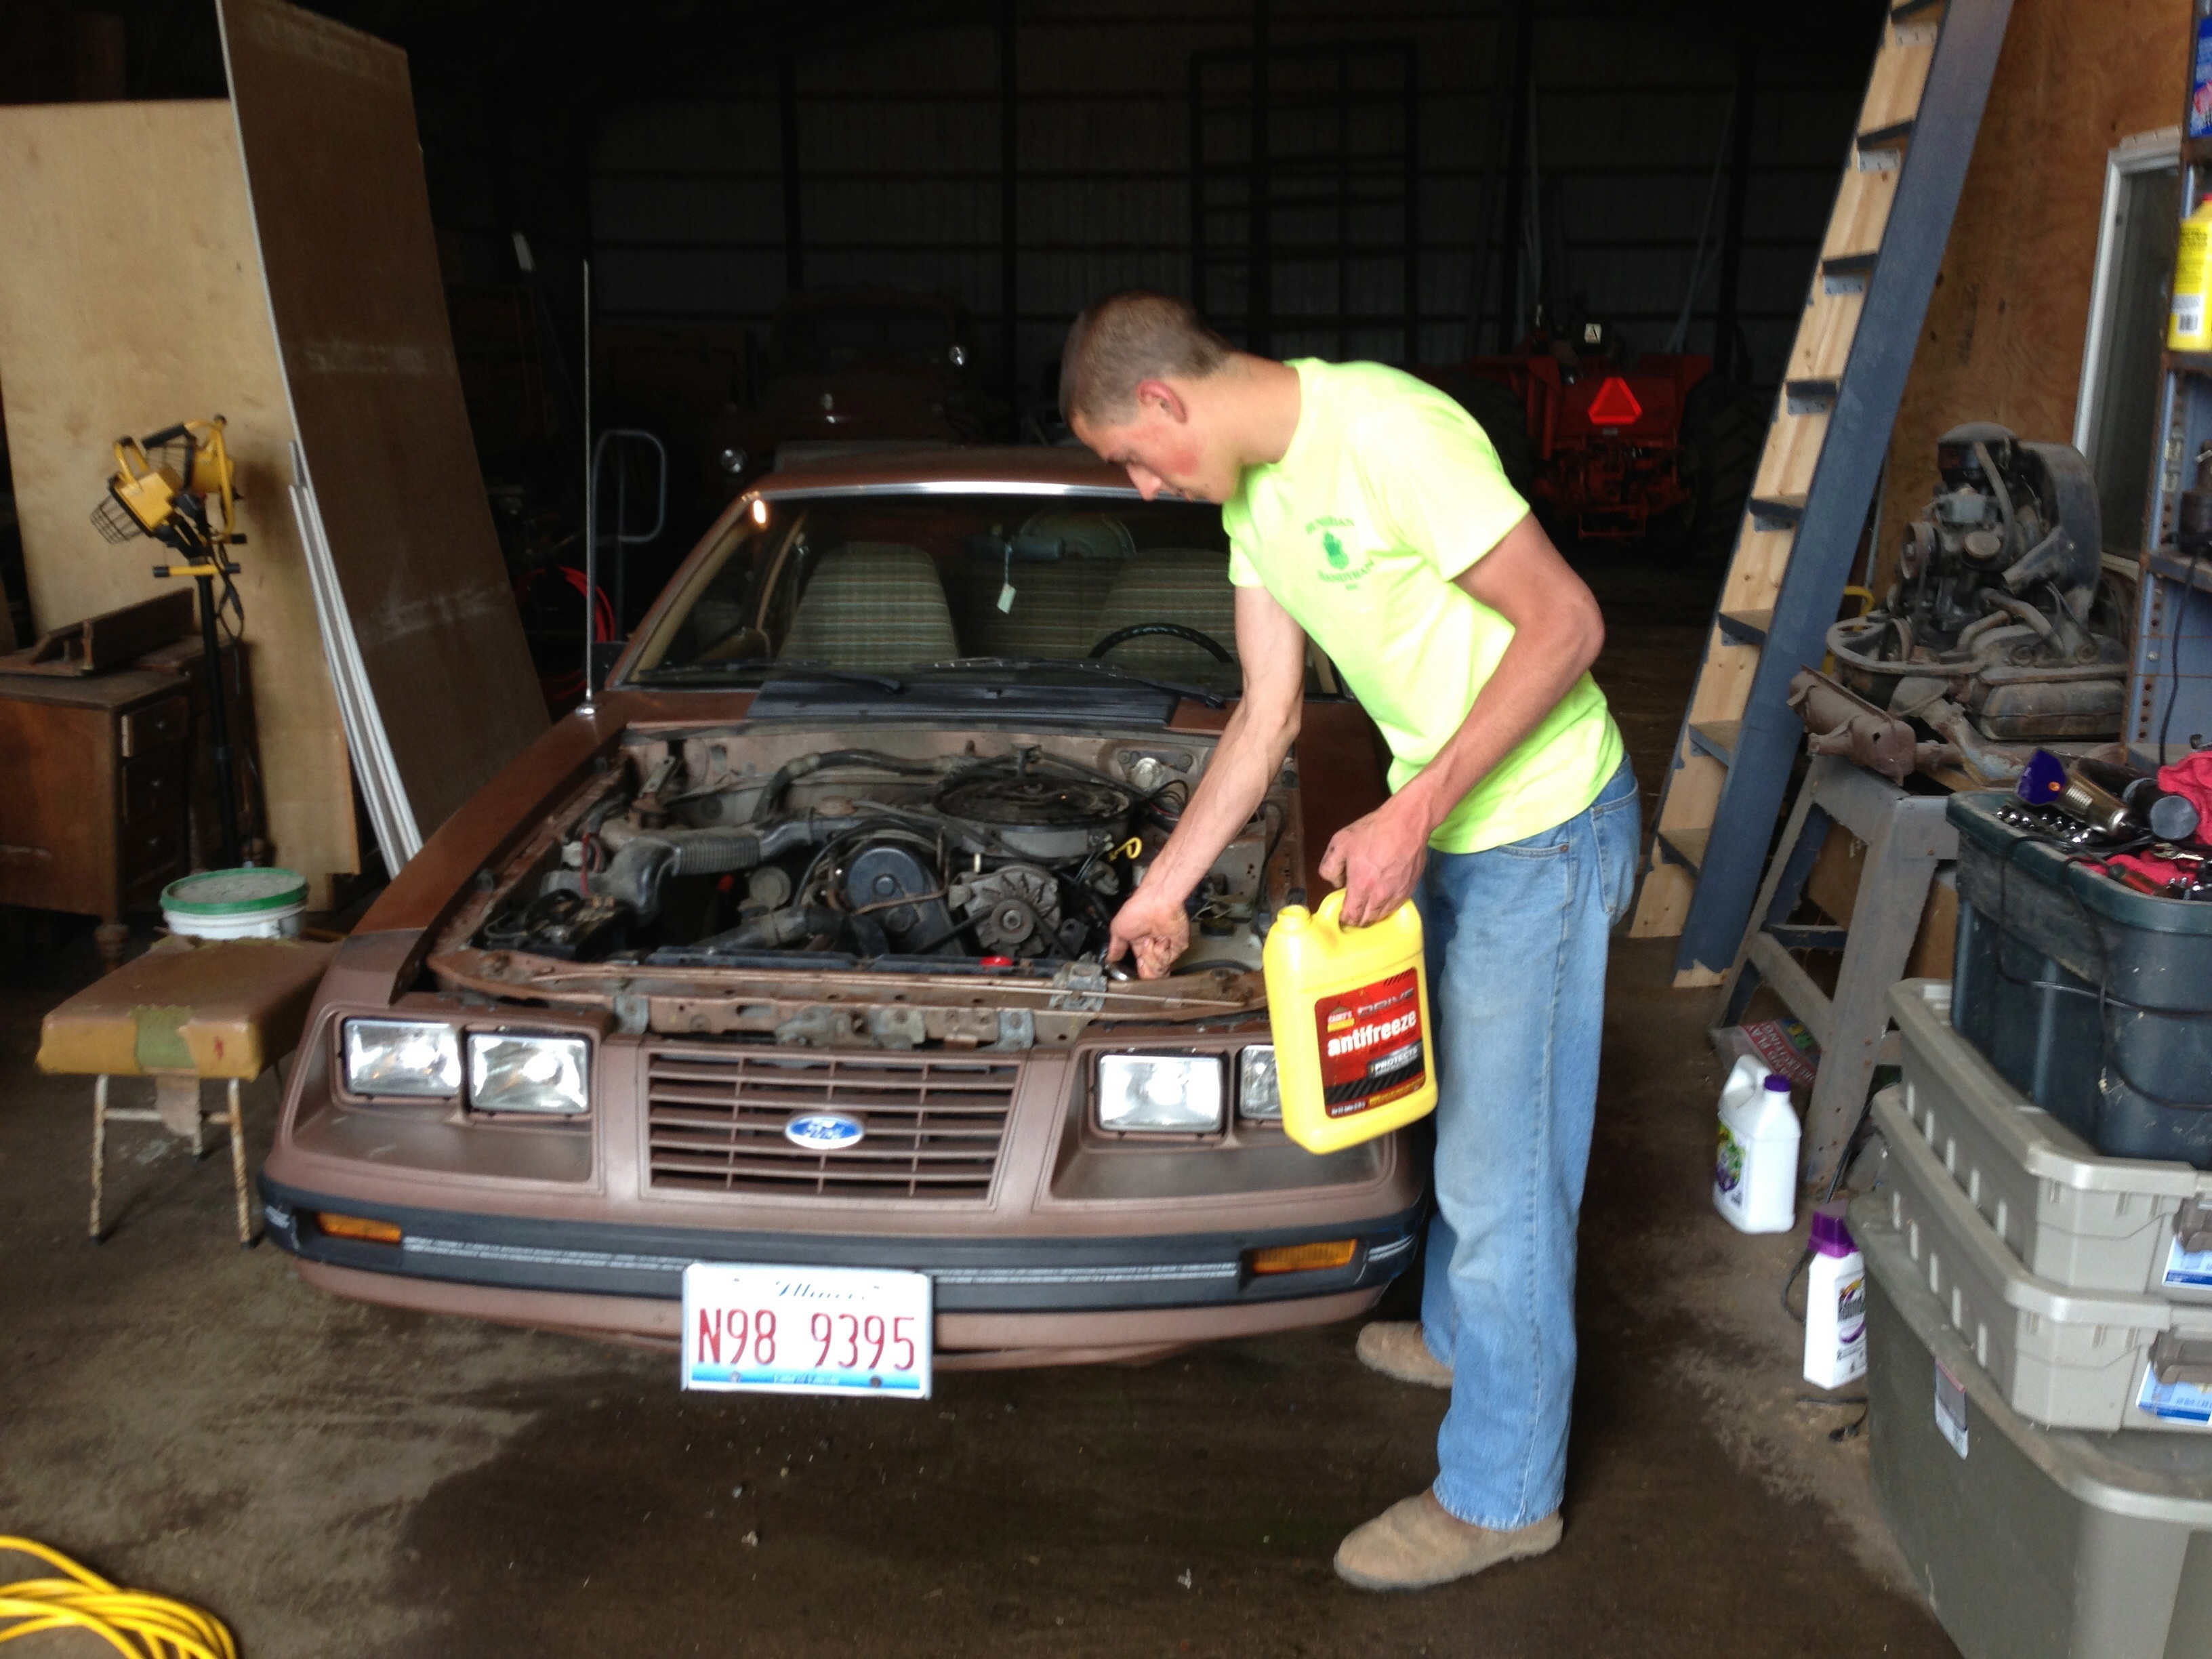 Curbside Classic 1989 Ford Mustang Lx Our Dirty Little Secret 1988 Ranger 2 3 Timing Marks Heres The Earlier L Also With 23l Engine Thats Son Number Two Doing What He Had To Do A Lot Of